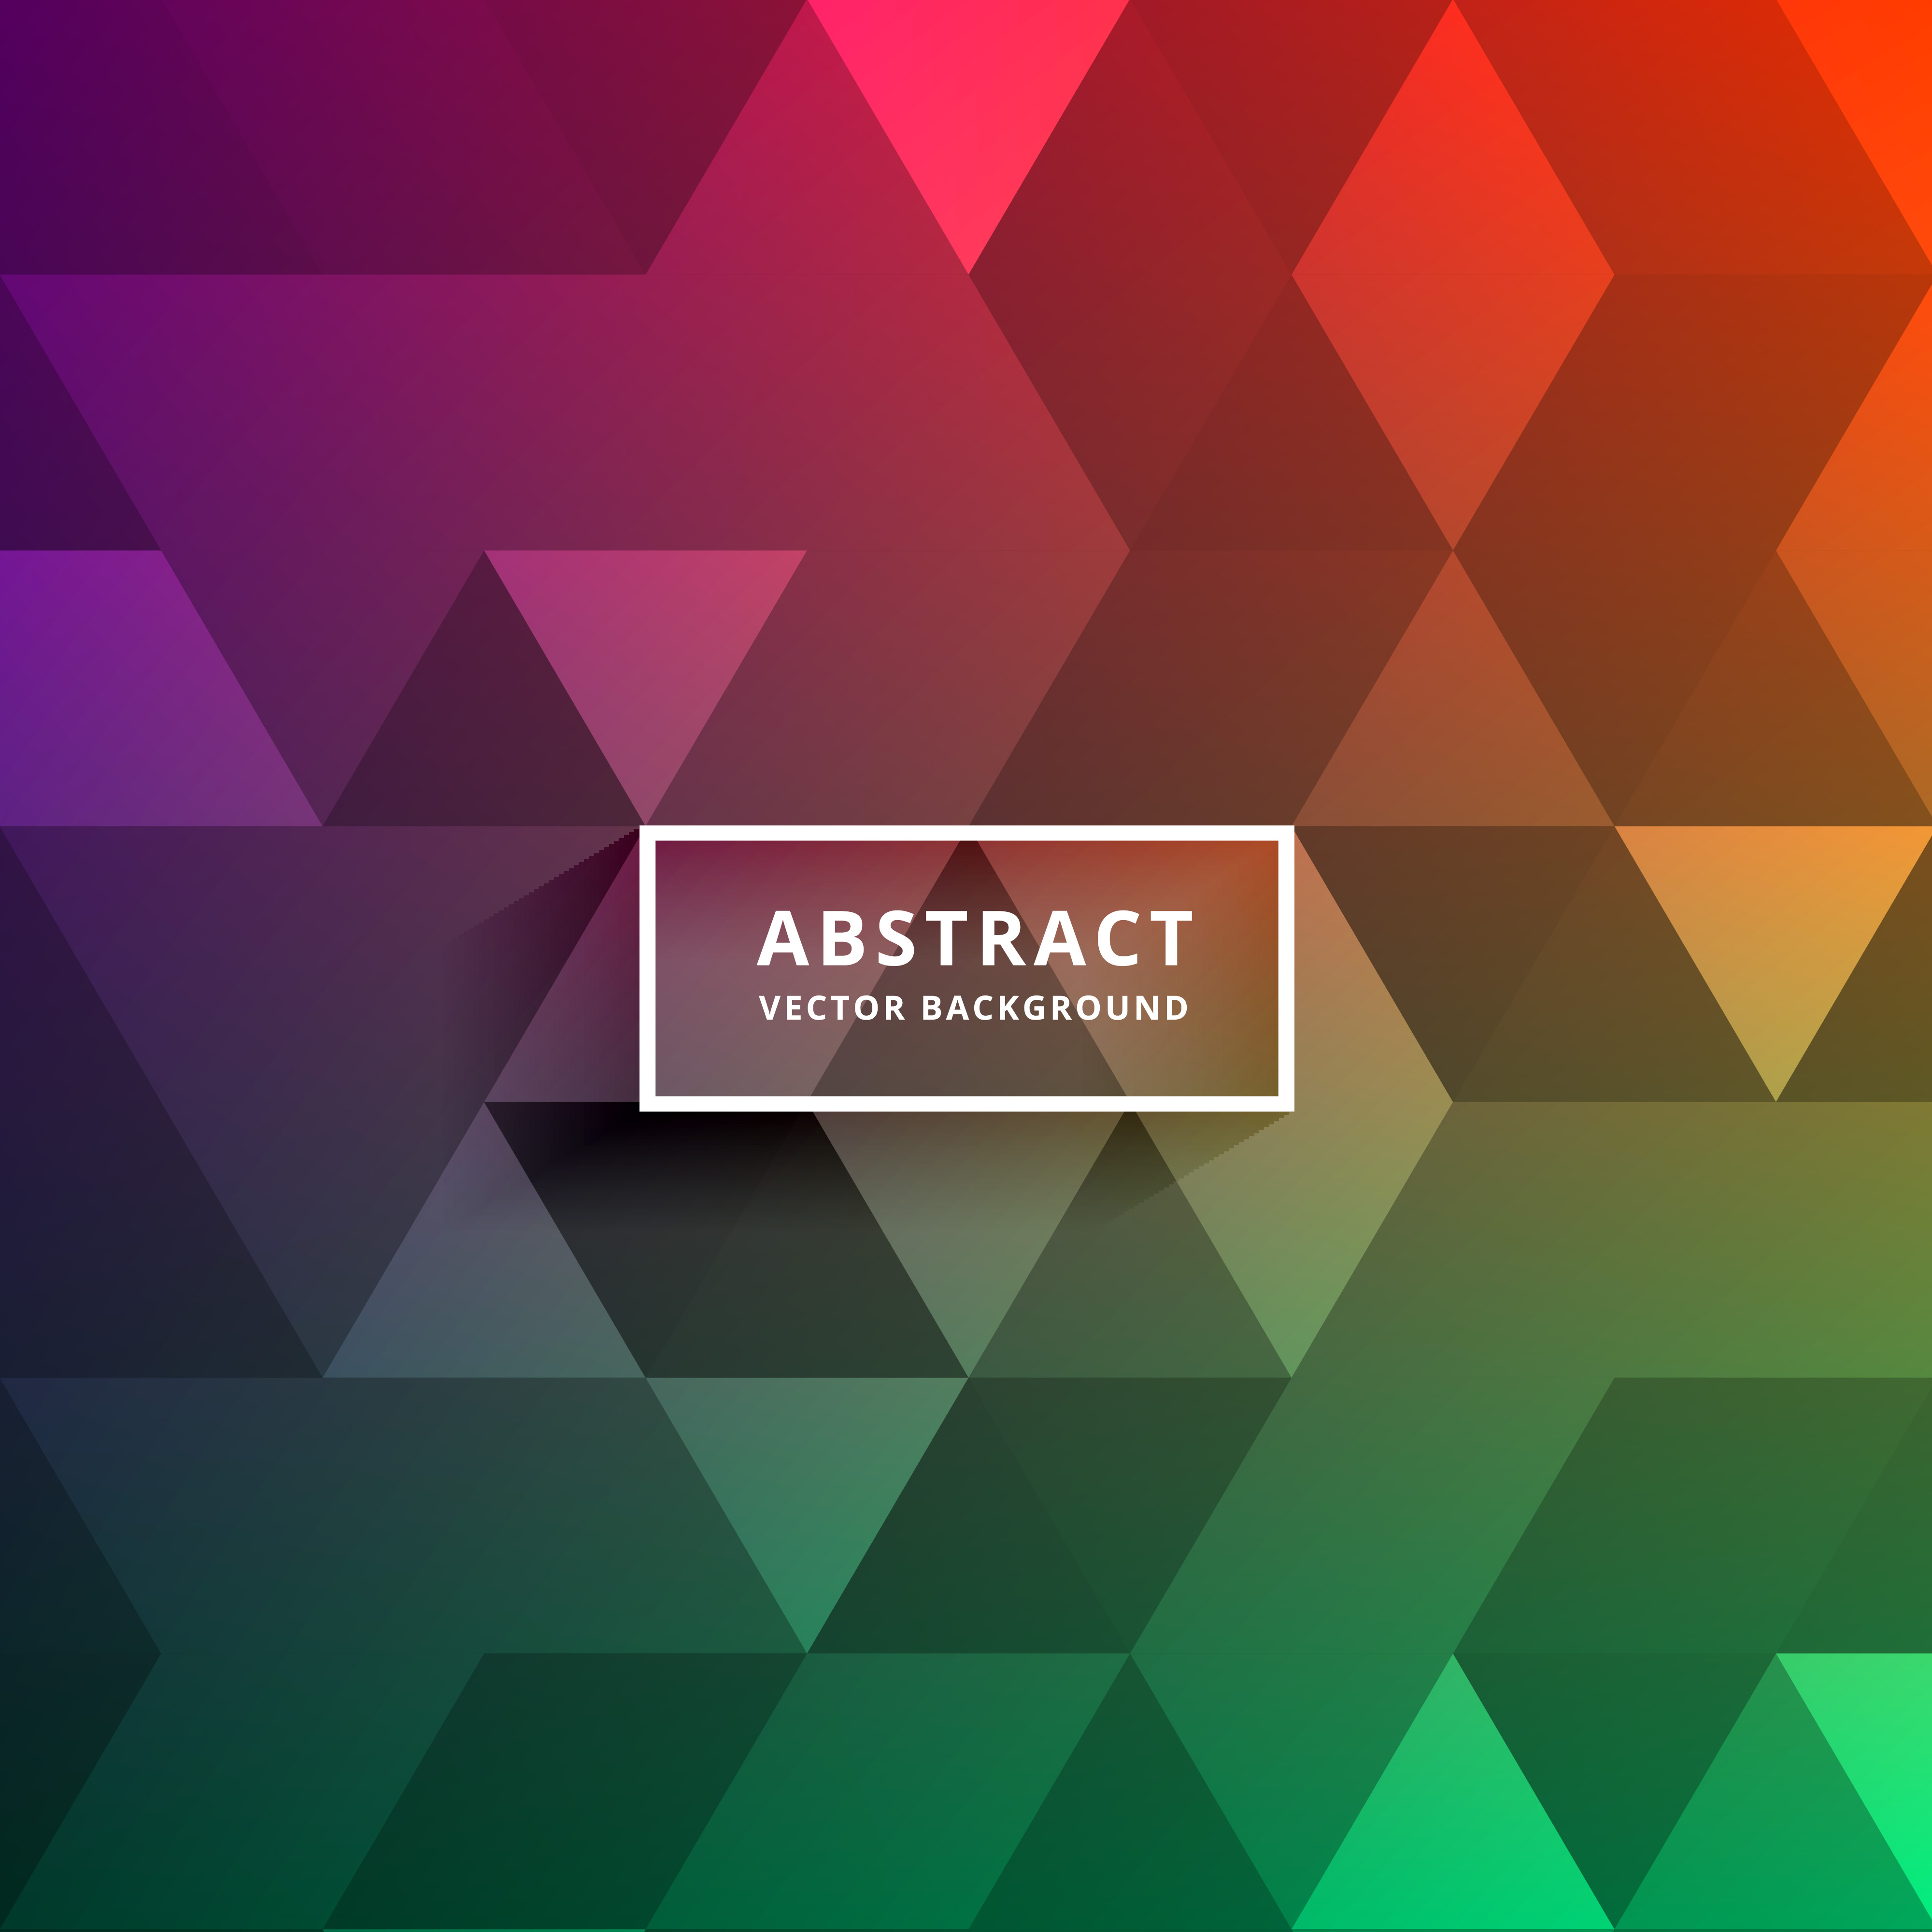 colorful triangle shapes pattern design background